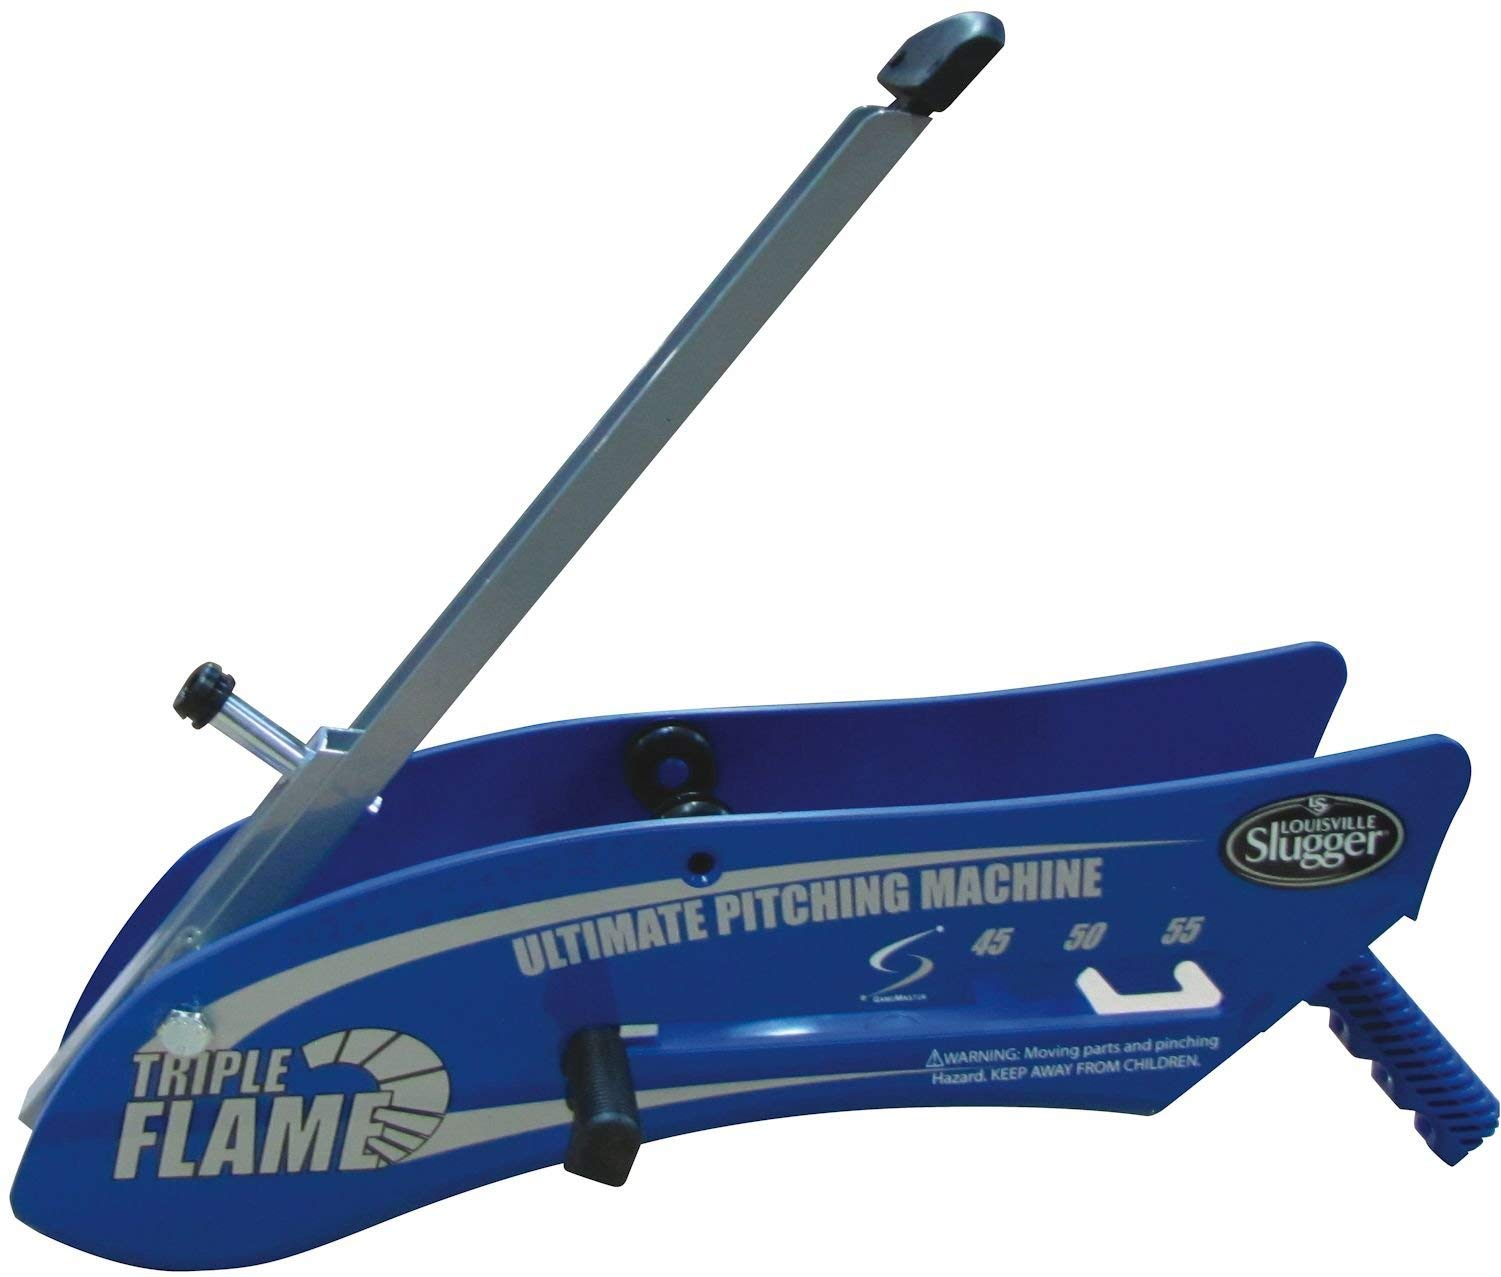 Louisville Slugger Triple Flame Hand Held Pitching Machine (Renewed) by Louisville Slugger